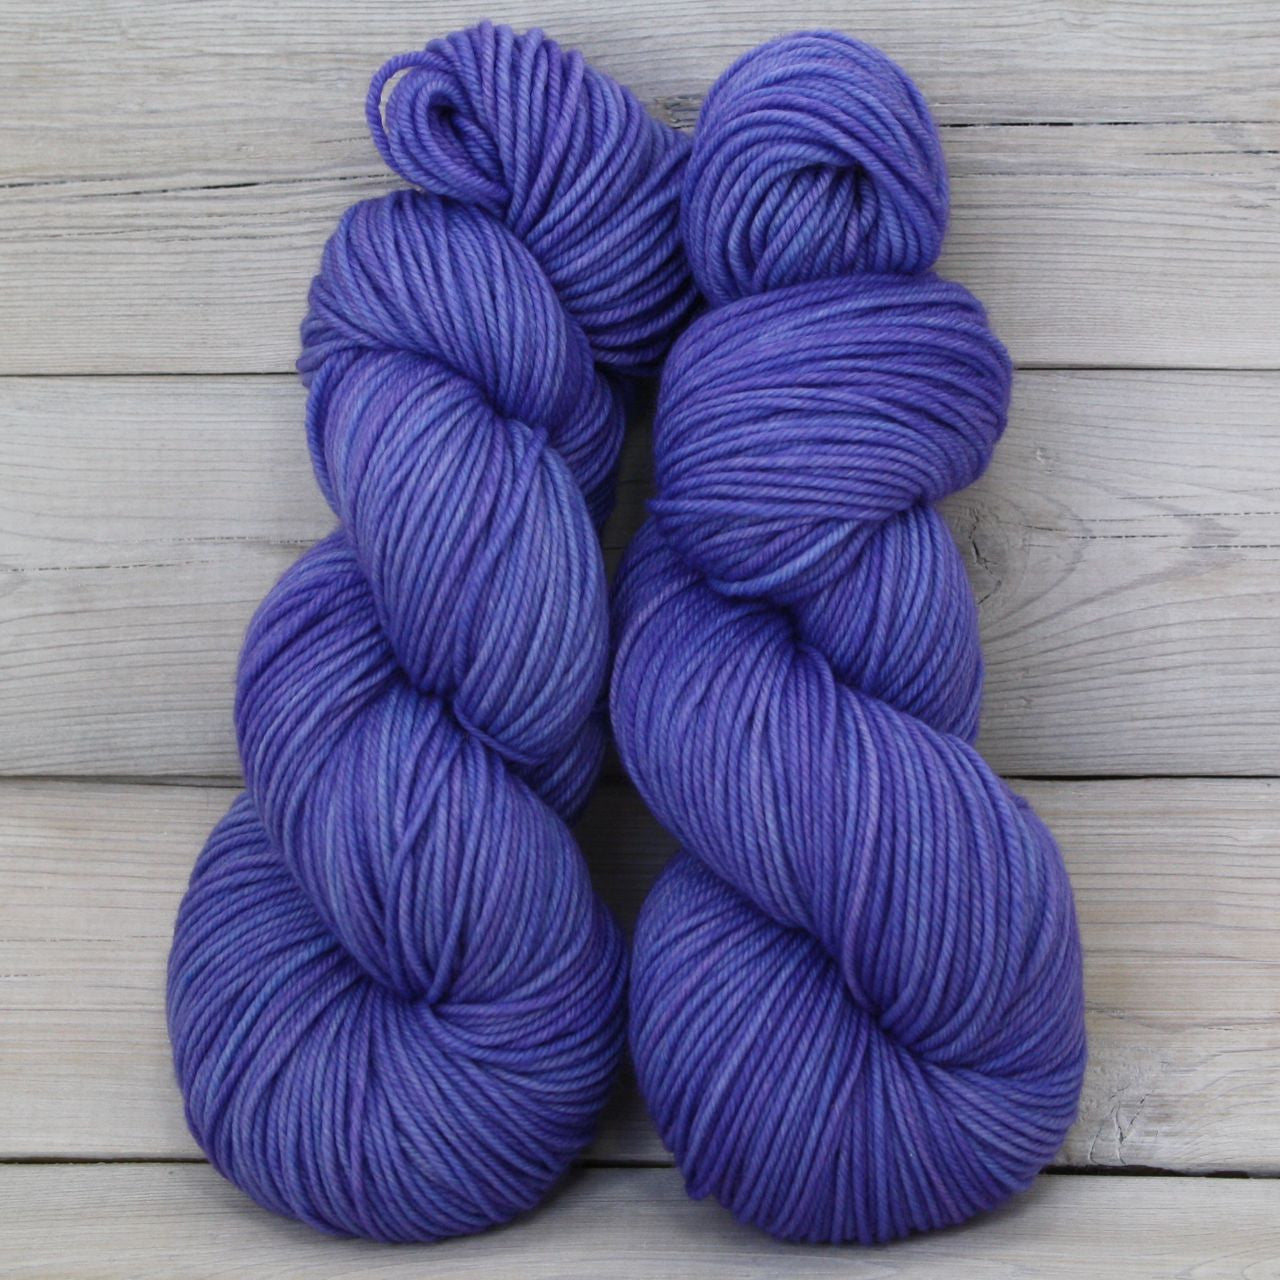 Calypso Yarn | Colorway: Columbine